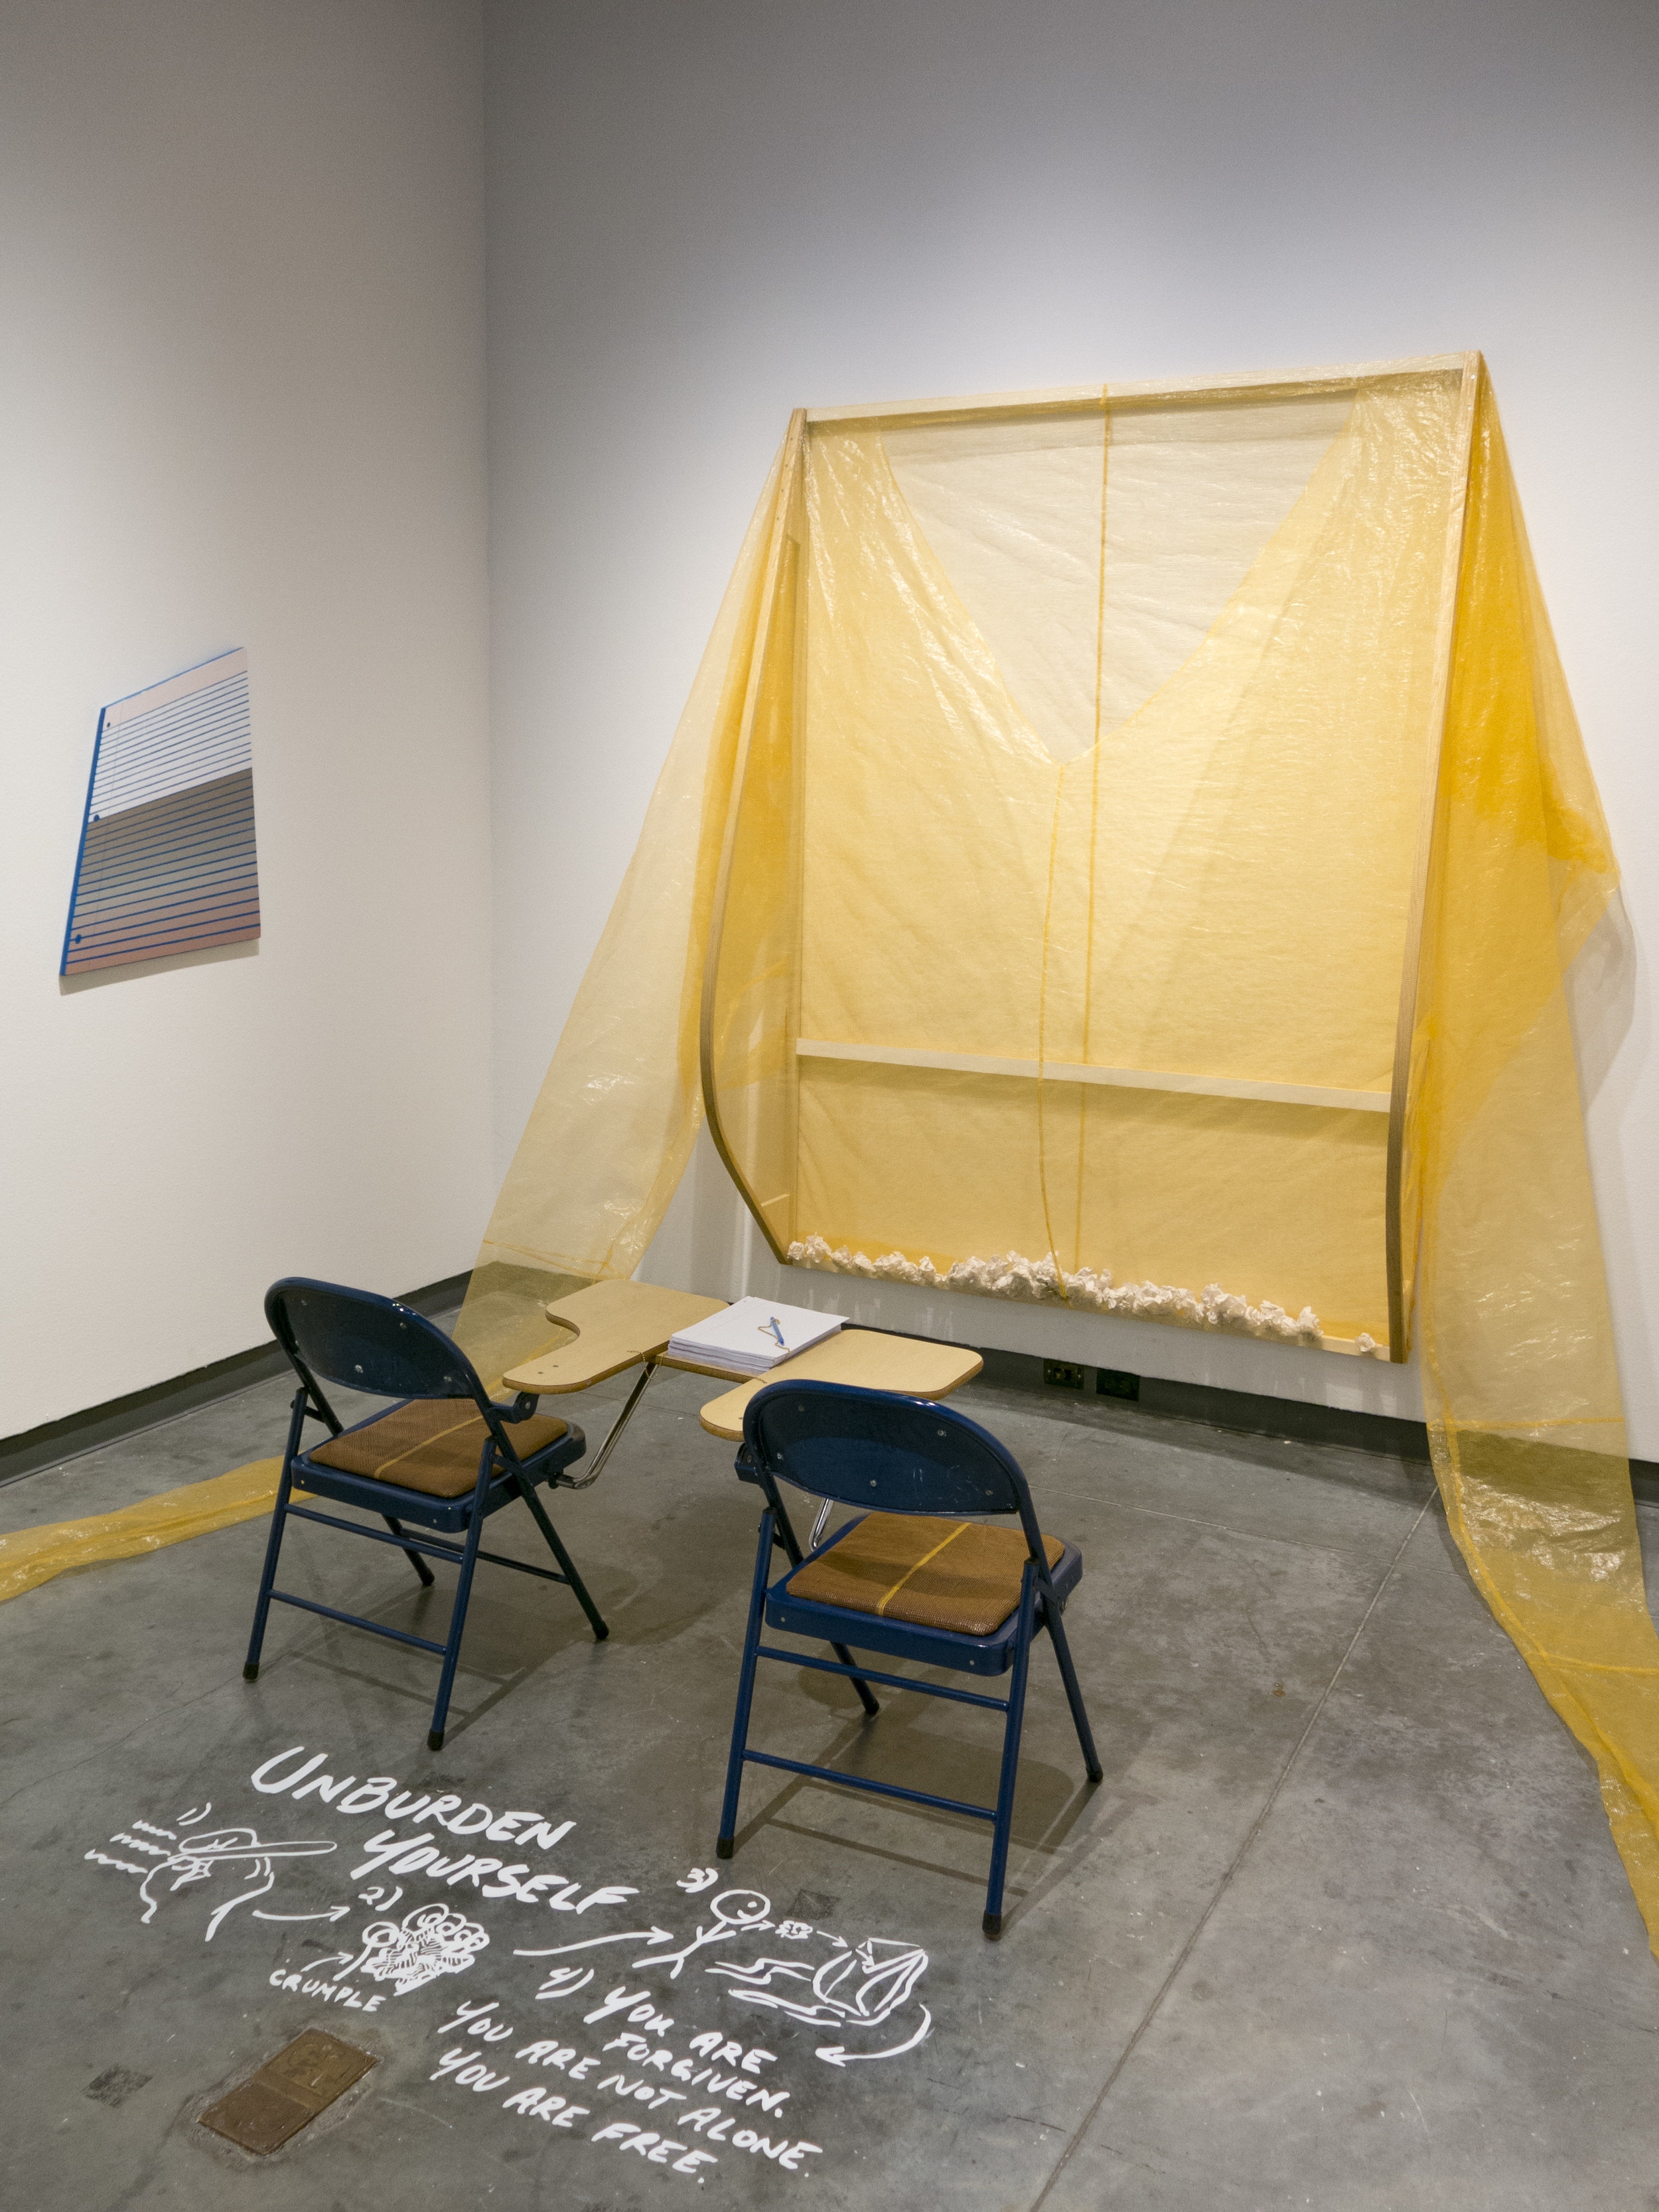 Hopes & Dreams / Fears & Feels - Participatory installation and solo exhibition at Delaware Contemporary's Draper Experiment project space. 2019.